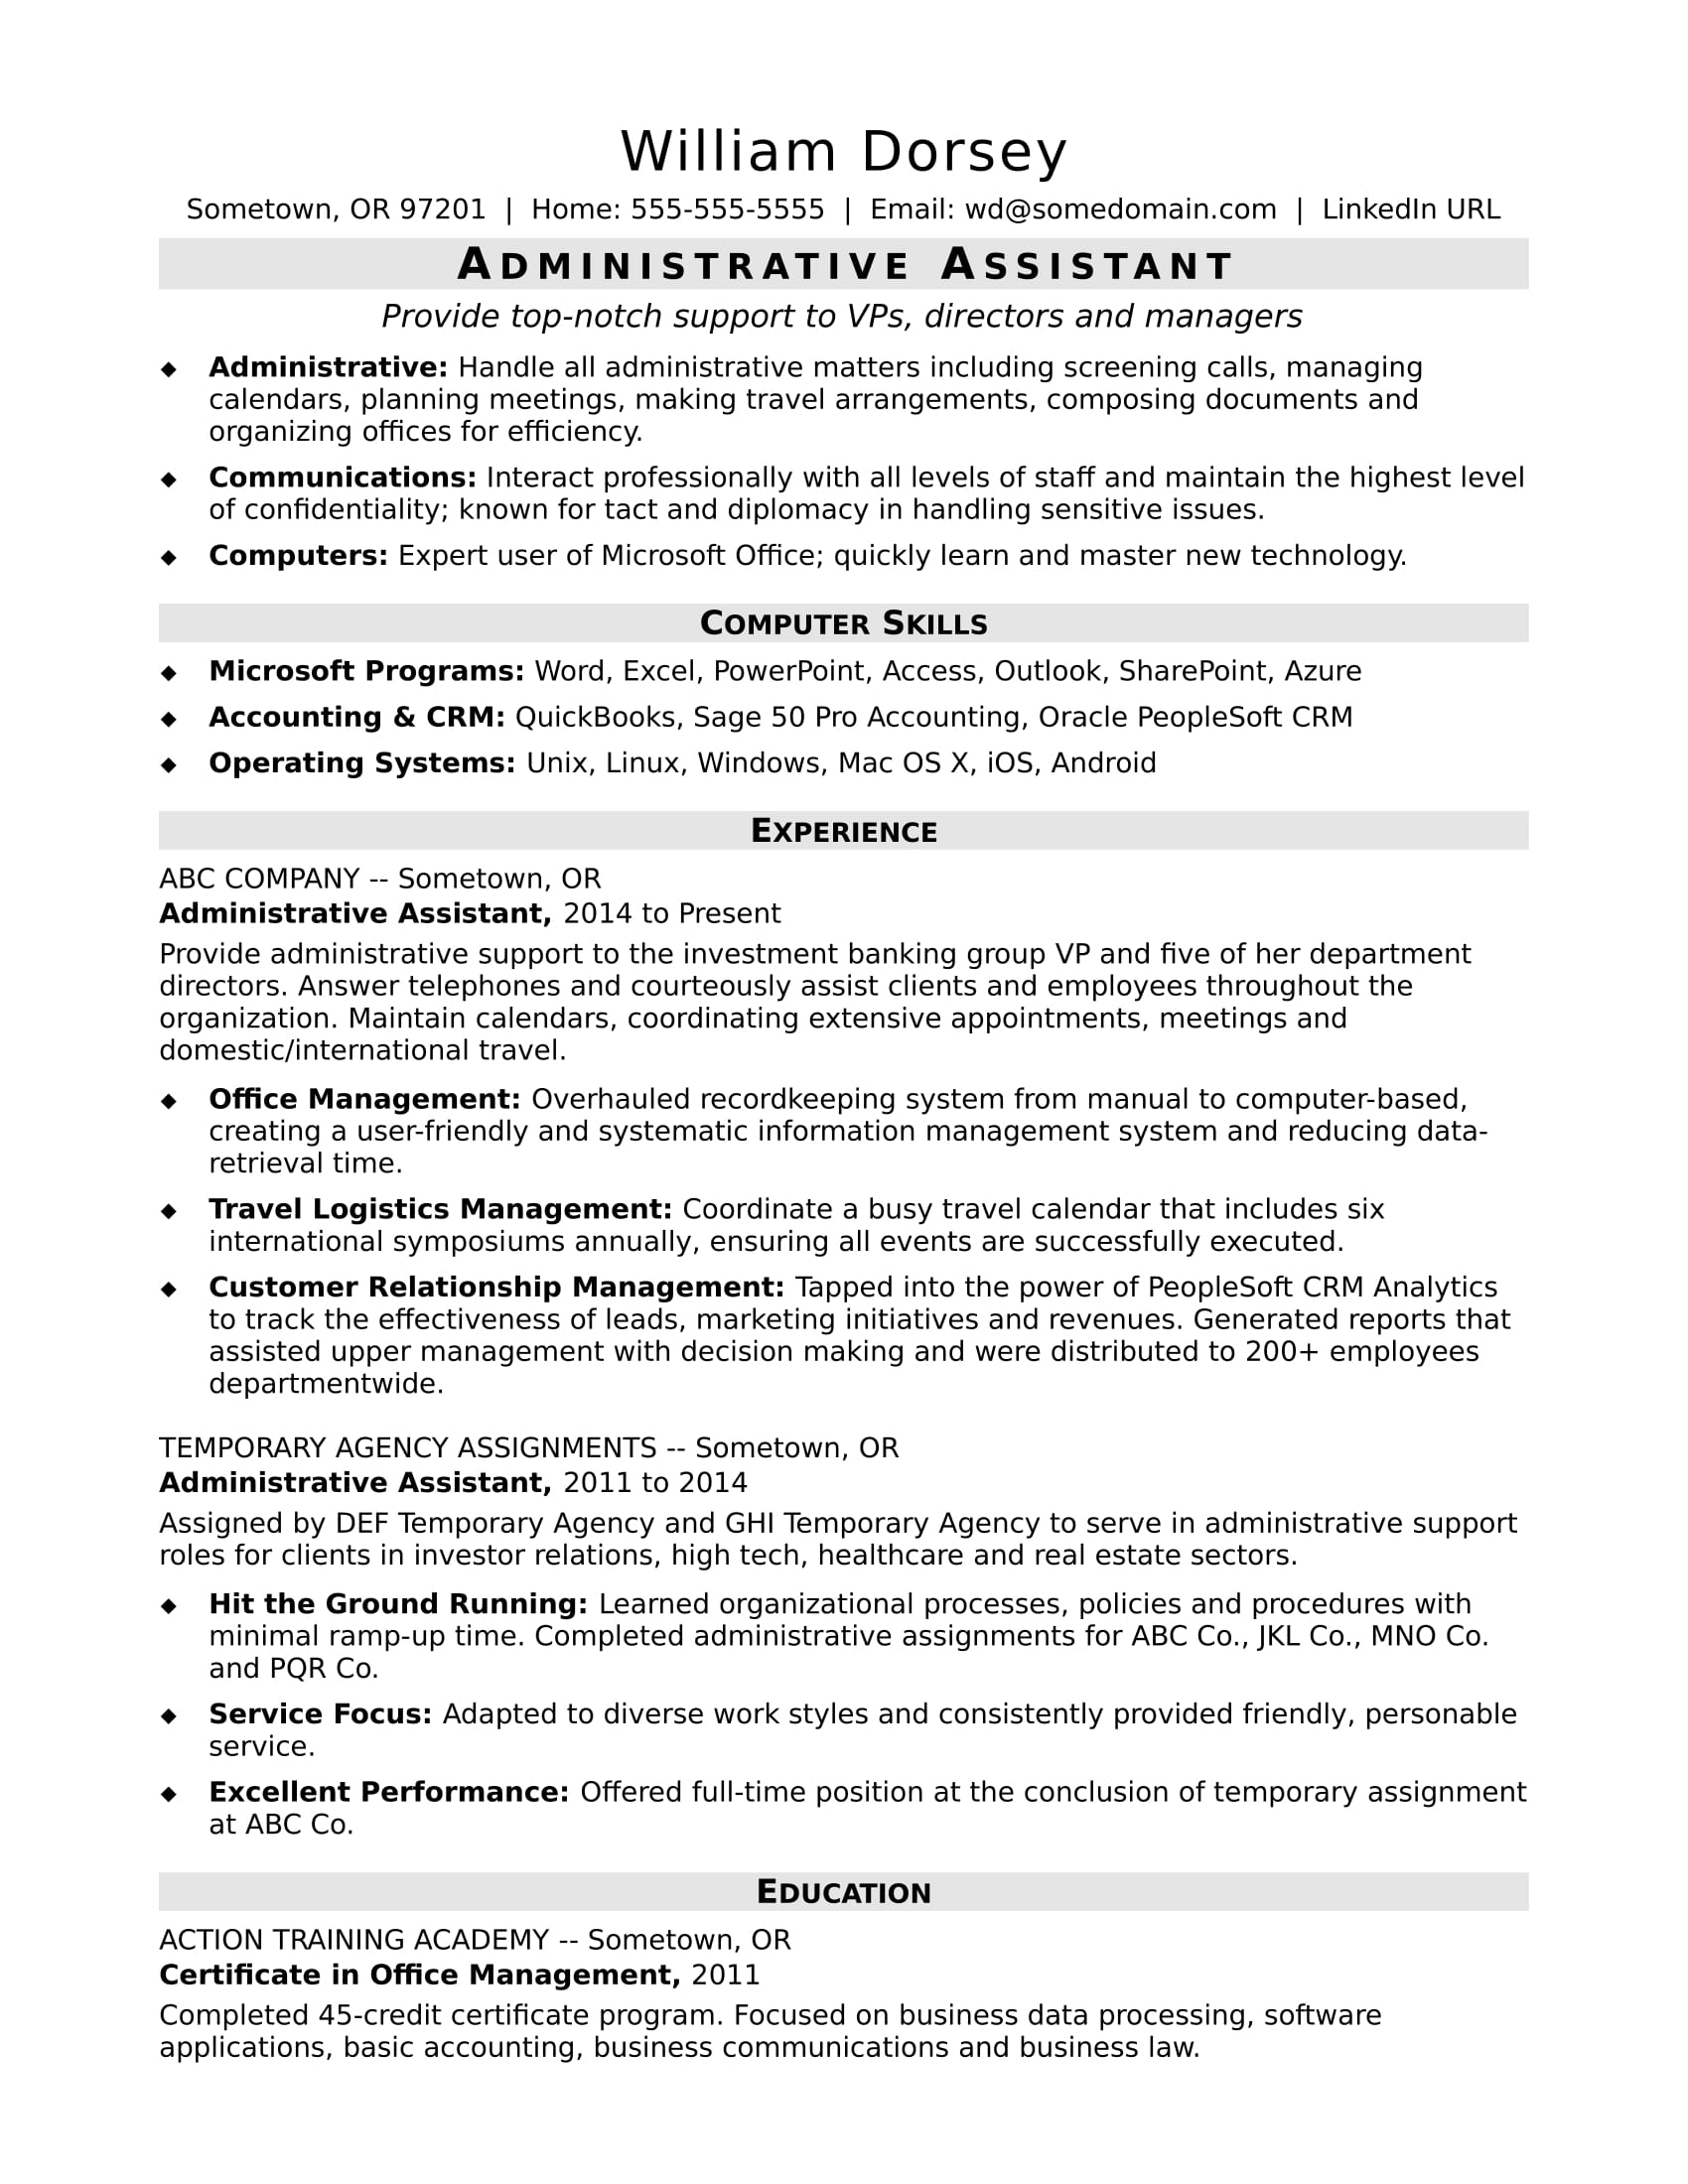 Sample Resume For A Midlevel Administrative Assistant  Sample Business Resumes